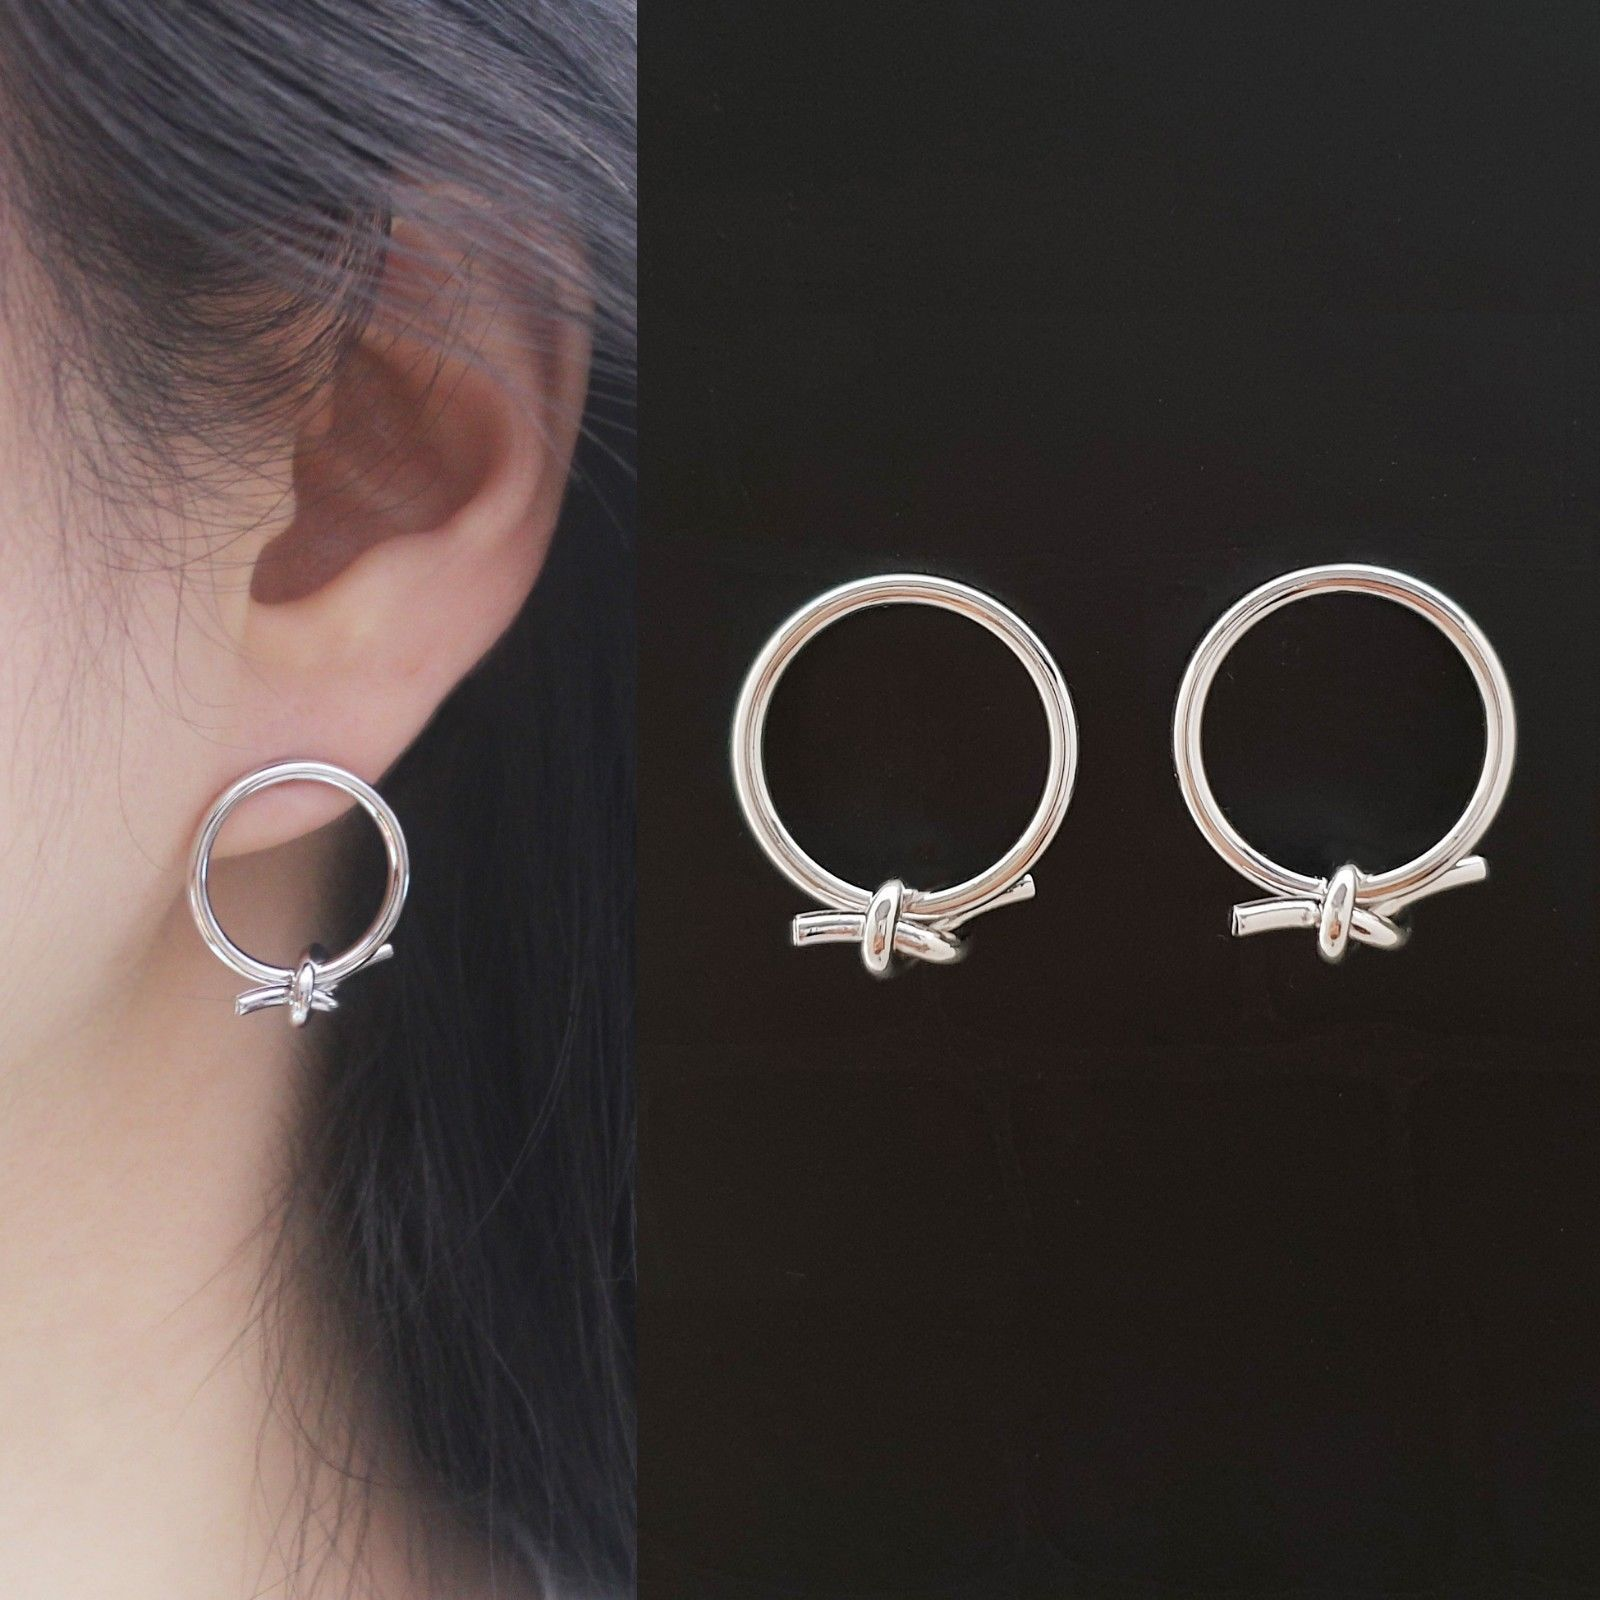 Open Circle Knot Stud Earrings Silver Tone  Brass Titanium Ear Gift For Women